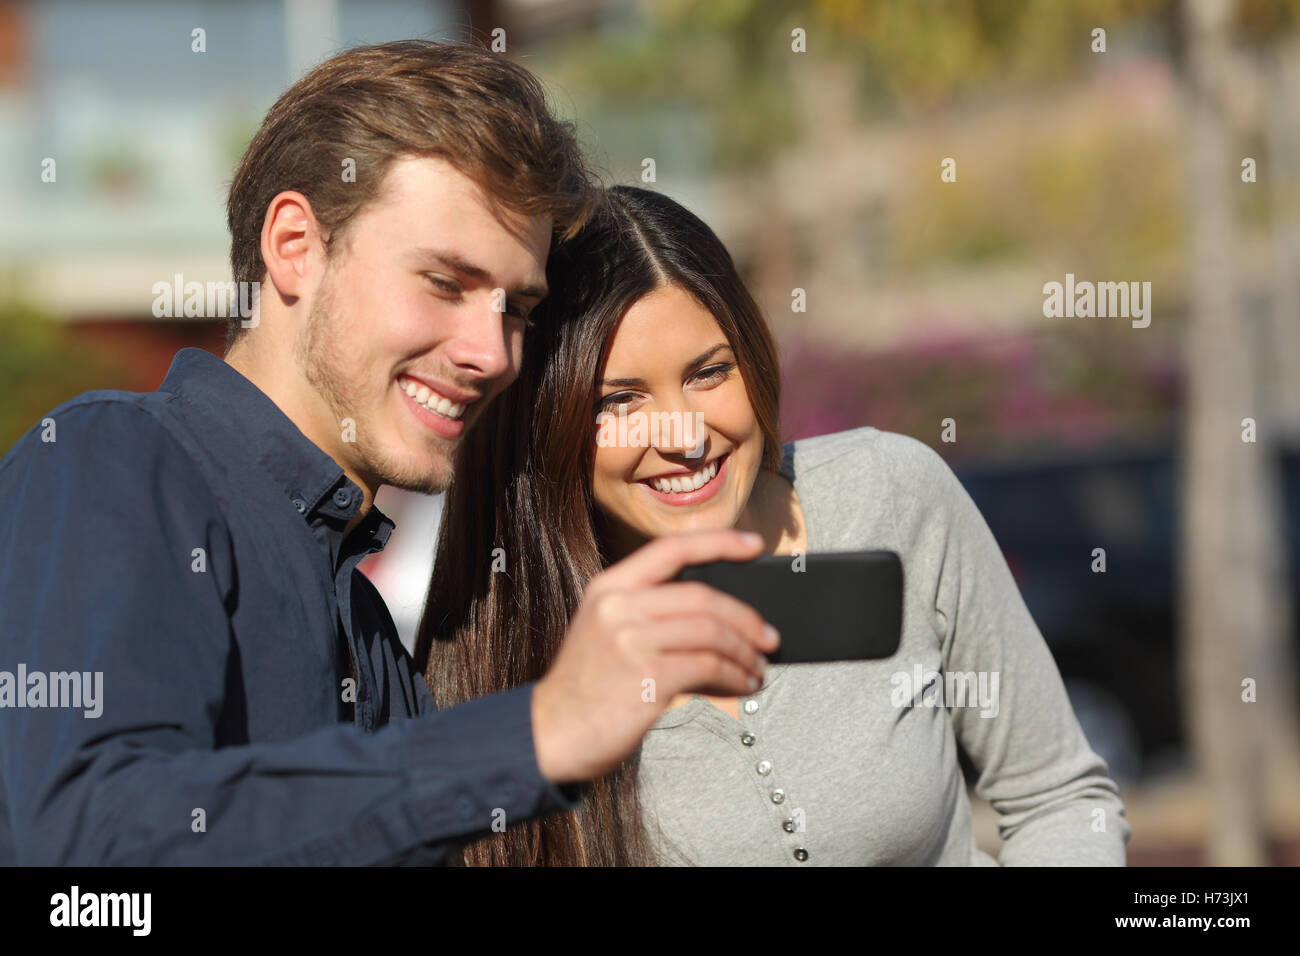 whats your price dating app Tired of tinder seven free alternative dating apps social media  but with a sticker price of $1199 a month, tinderplus is definitely outside the budget of most of its users  but.